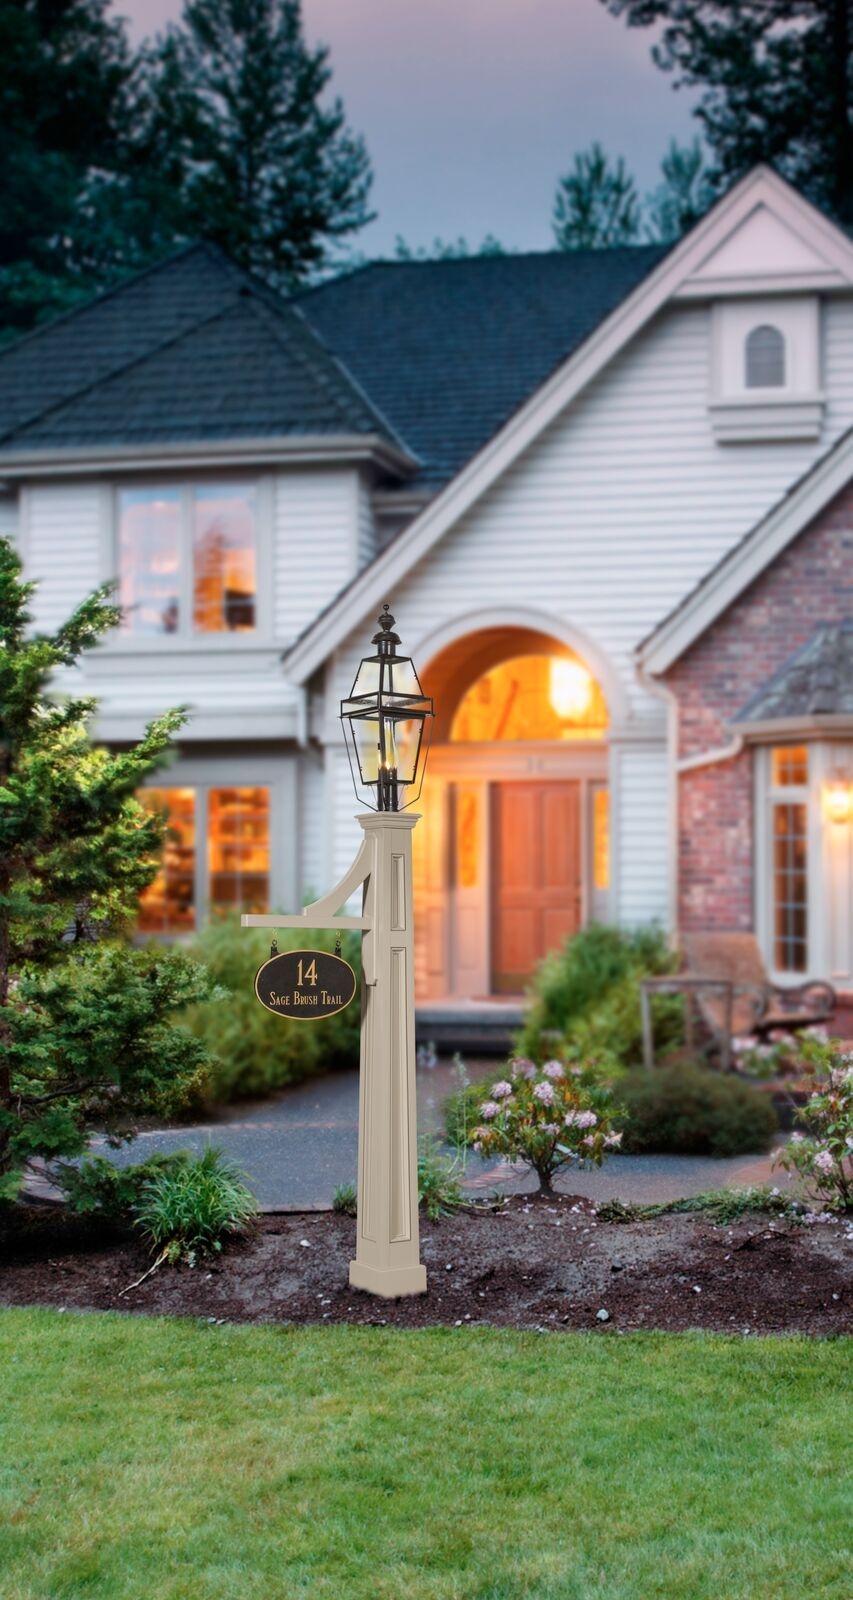 Add Special Decor To Your Landscape With Our Trenton Lantern Post With Beacon Lantern And Oval Address Si Landscaping Inspiration Home Landscaping Lantern Post